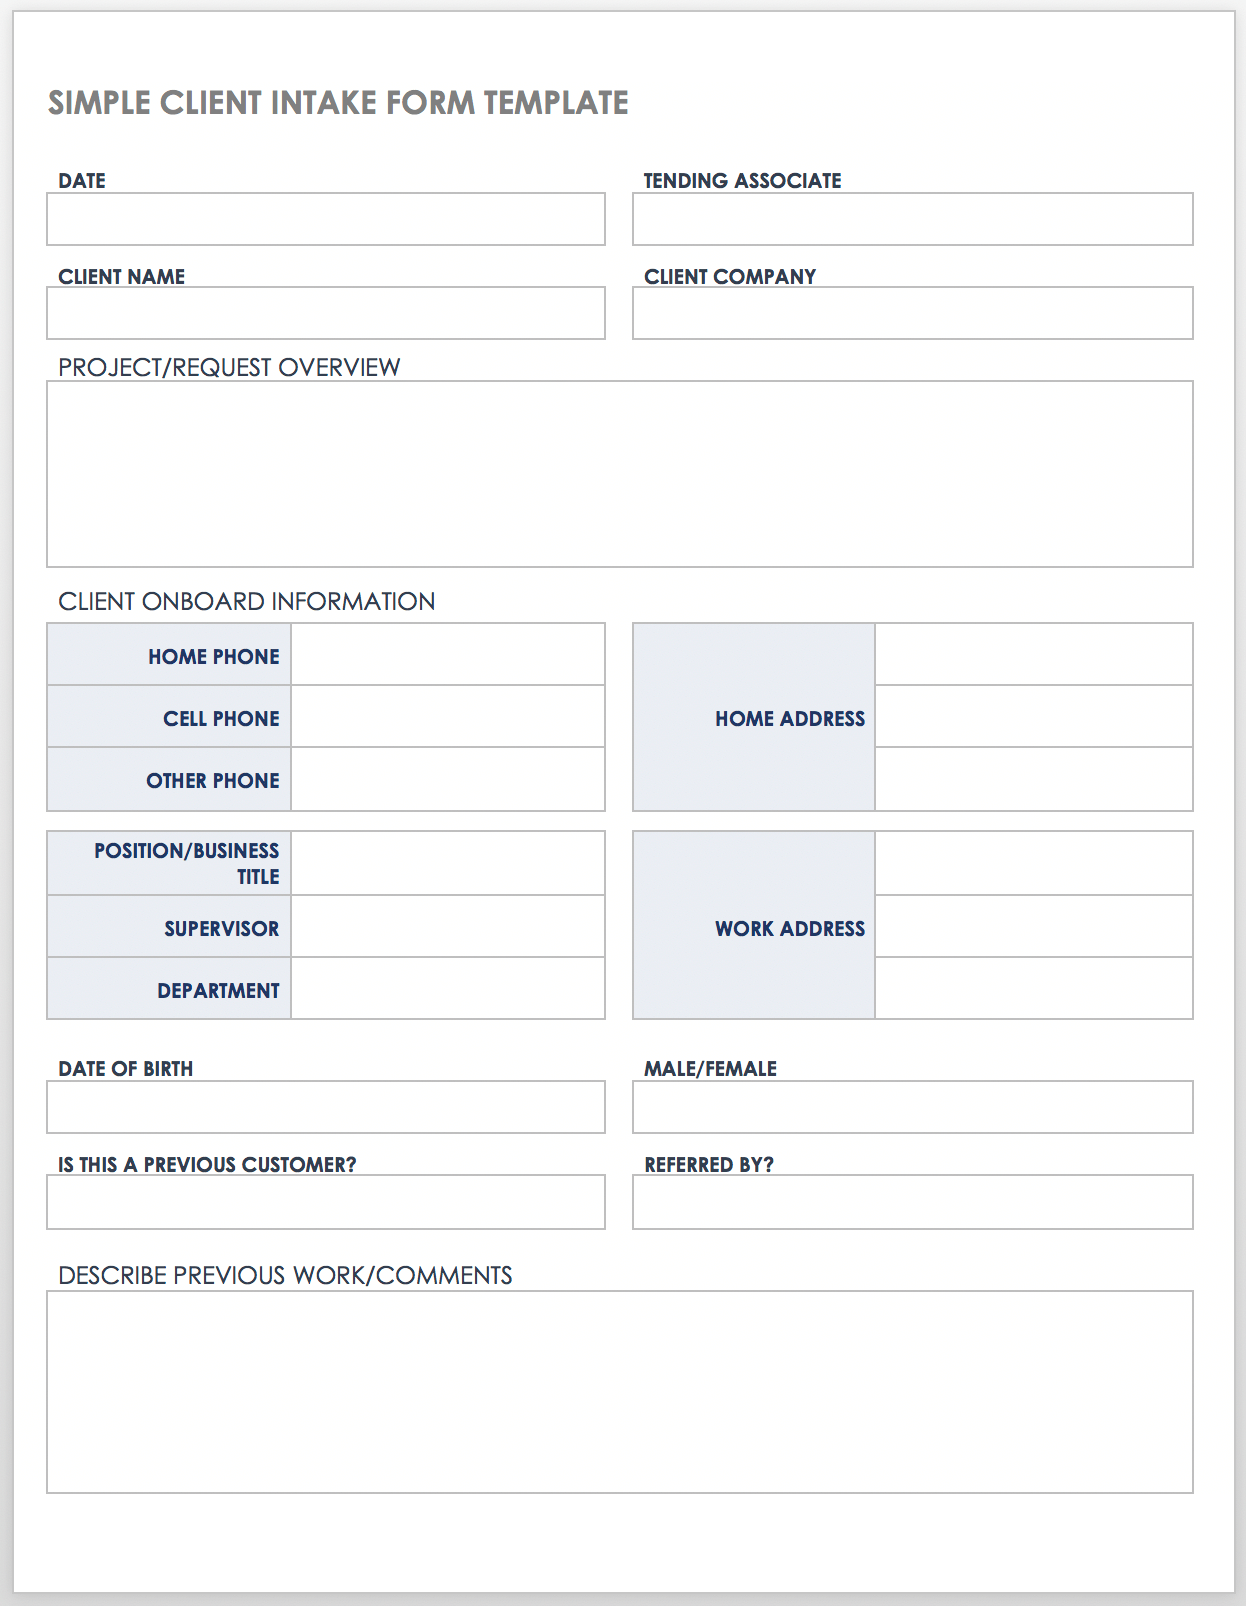 Free Client Intake Templates and Forms  Smartsheet With Regard To Medical History Template Word